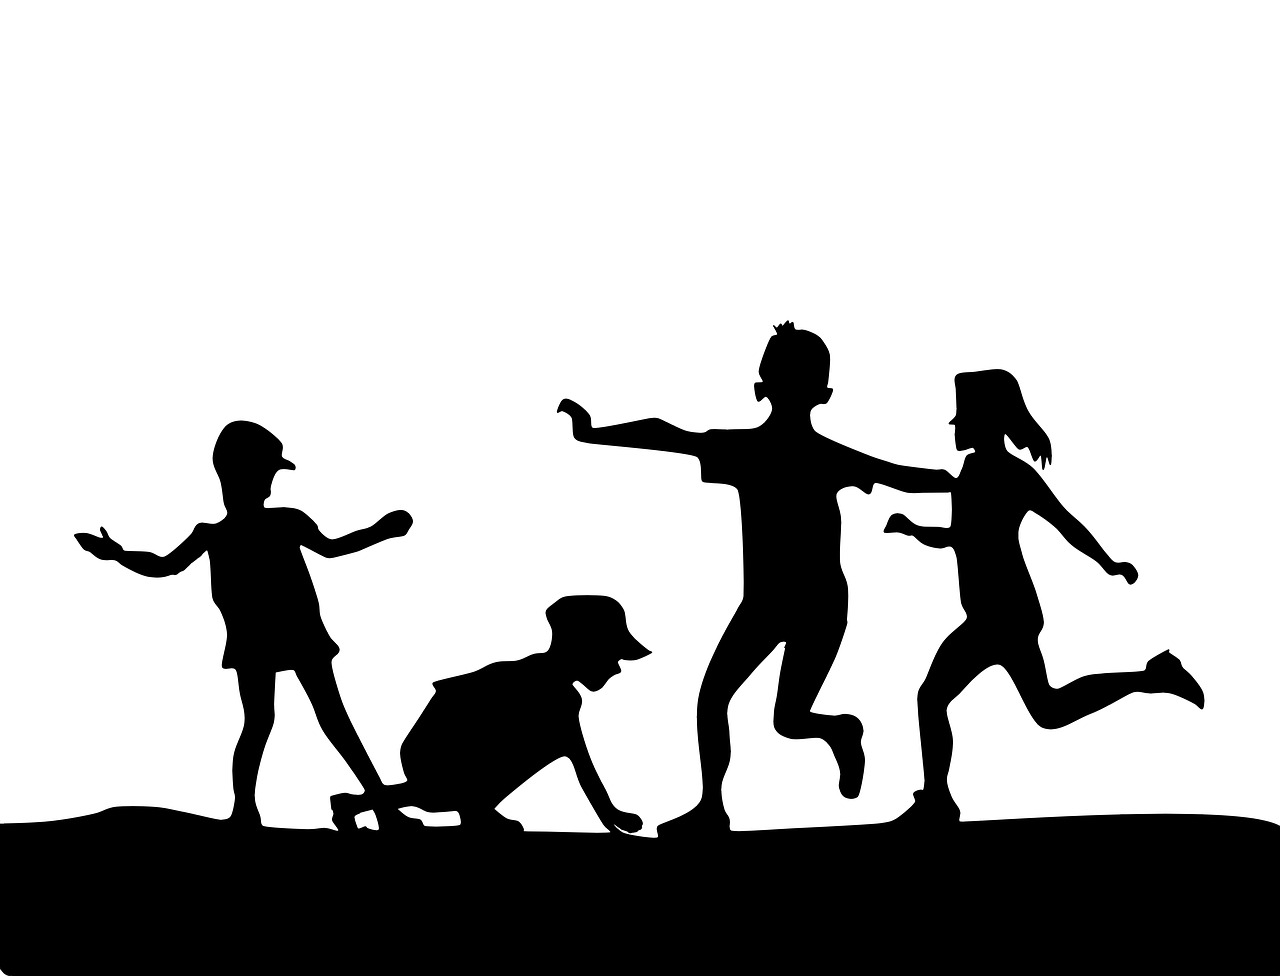 Child Playing Child Children S Day  - waldryano / Pixabay